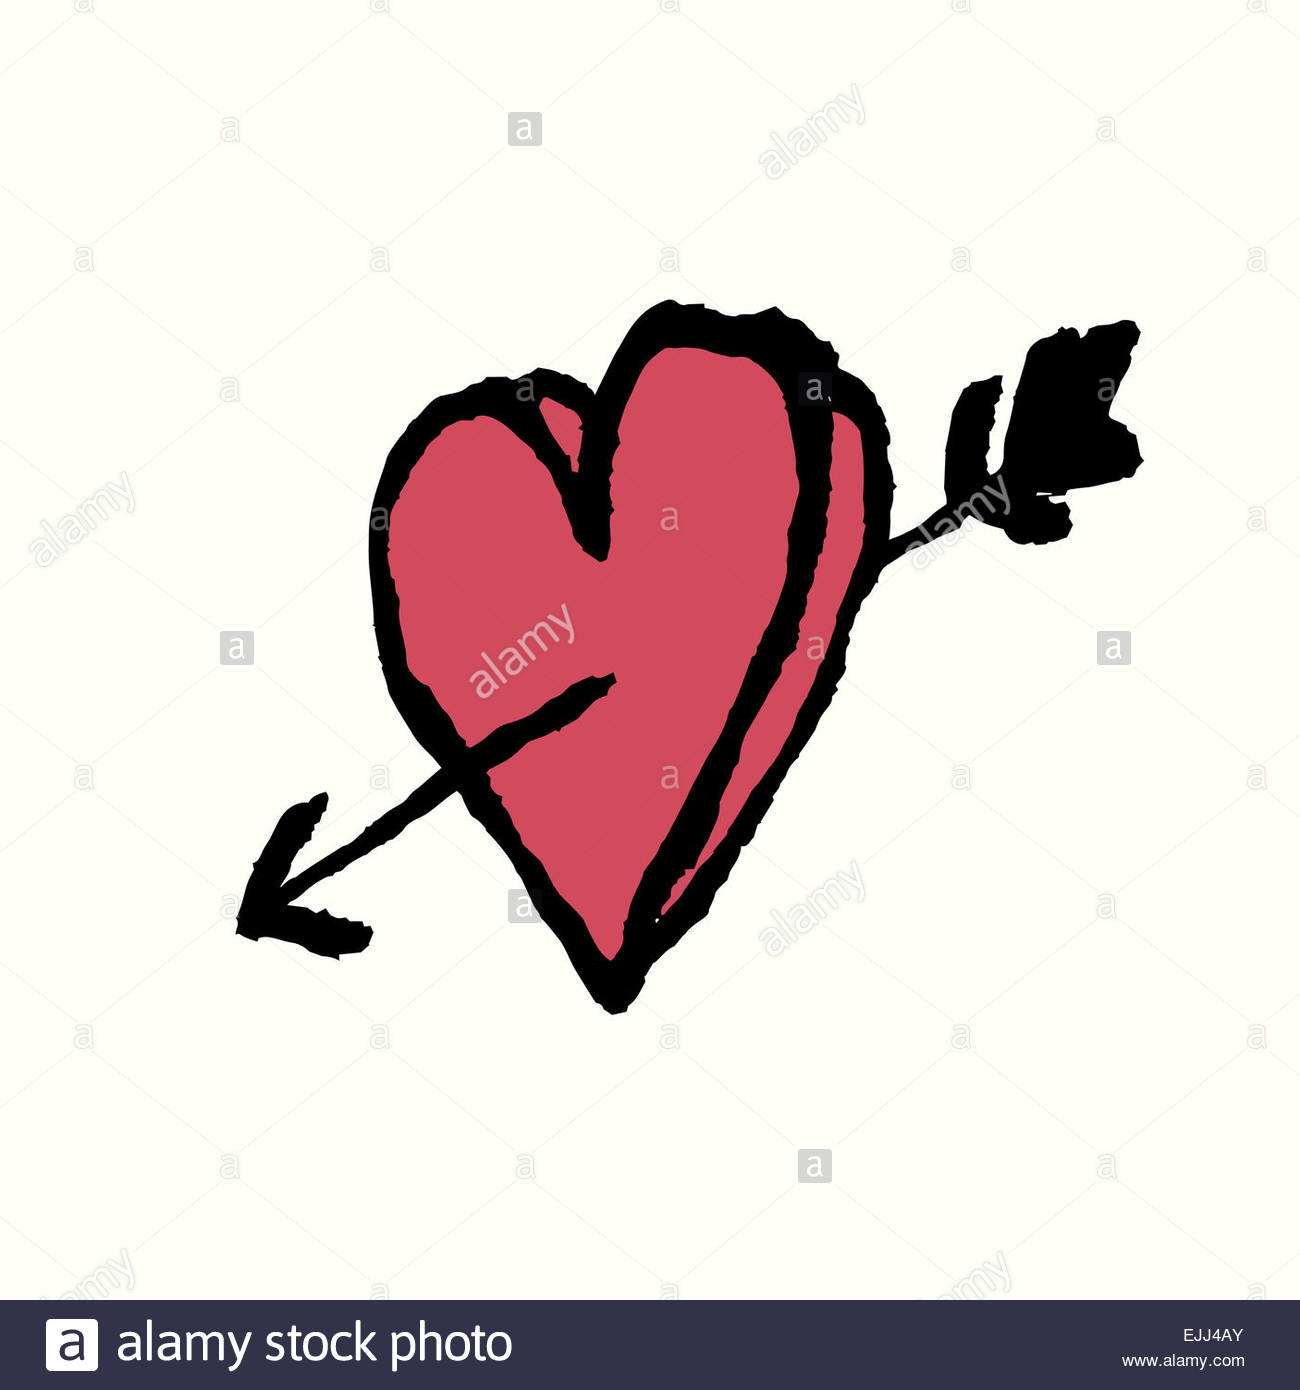 1300x1390 I Love You. Heart And Arrow. Hand Drawn Illustration Stock Photo